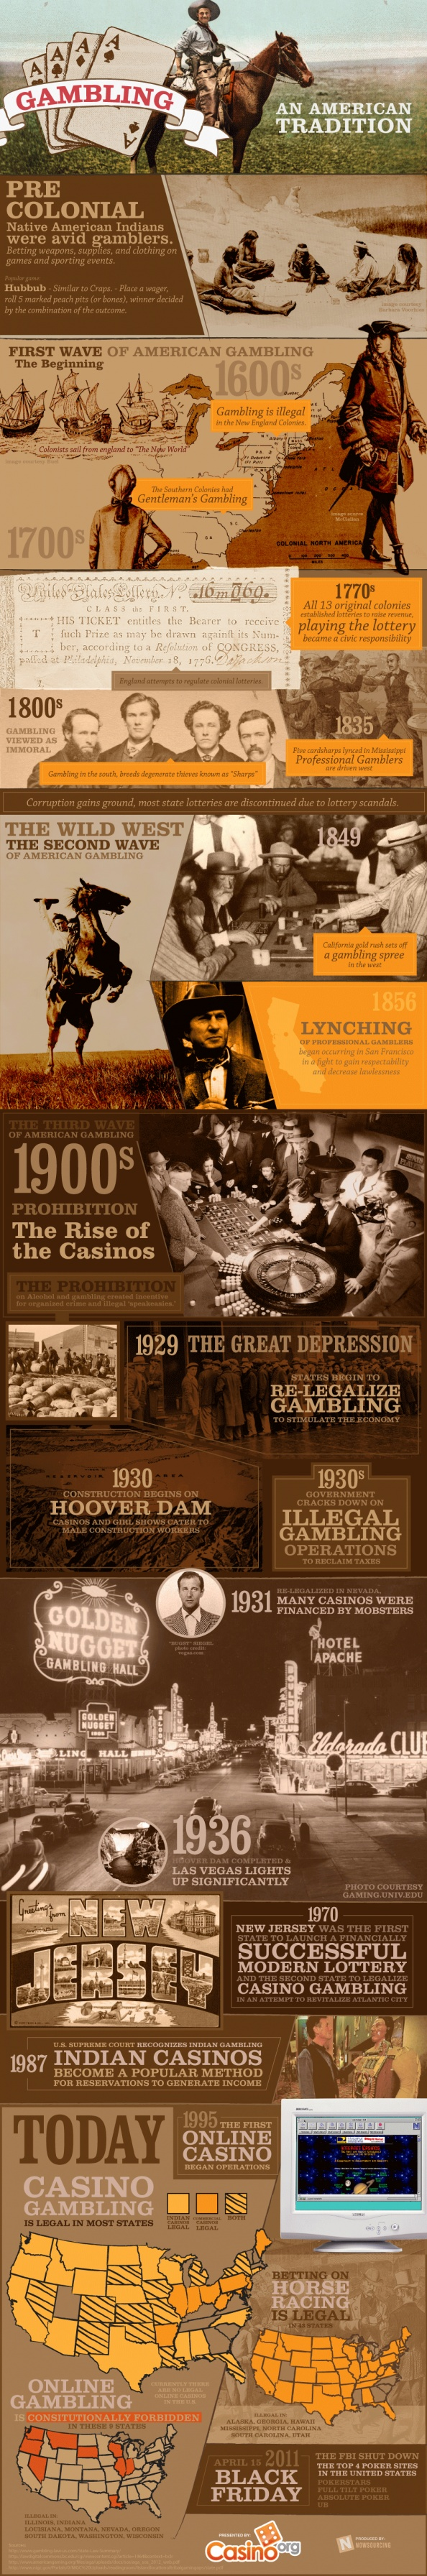 History of gambling addiction in the united states coeurdelane casino